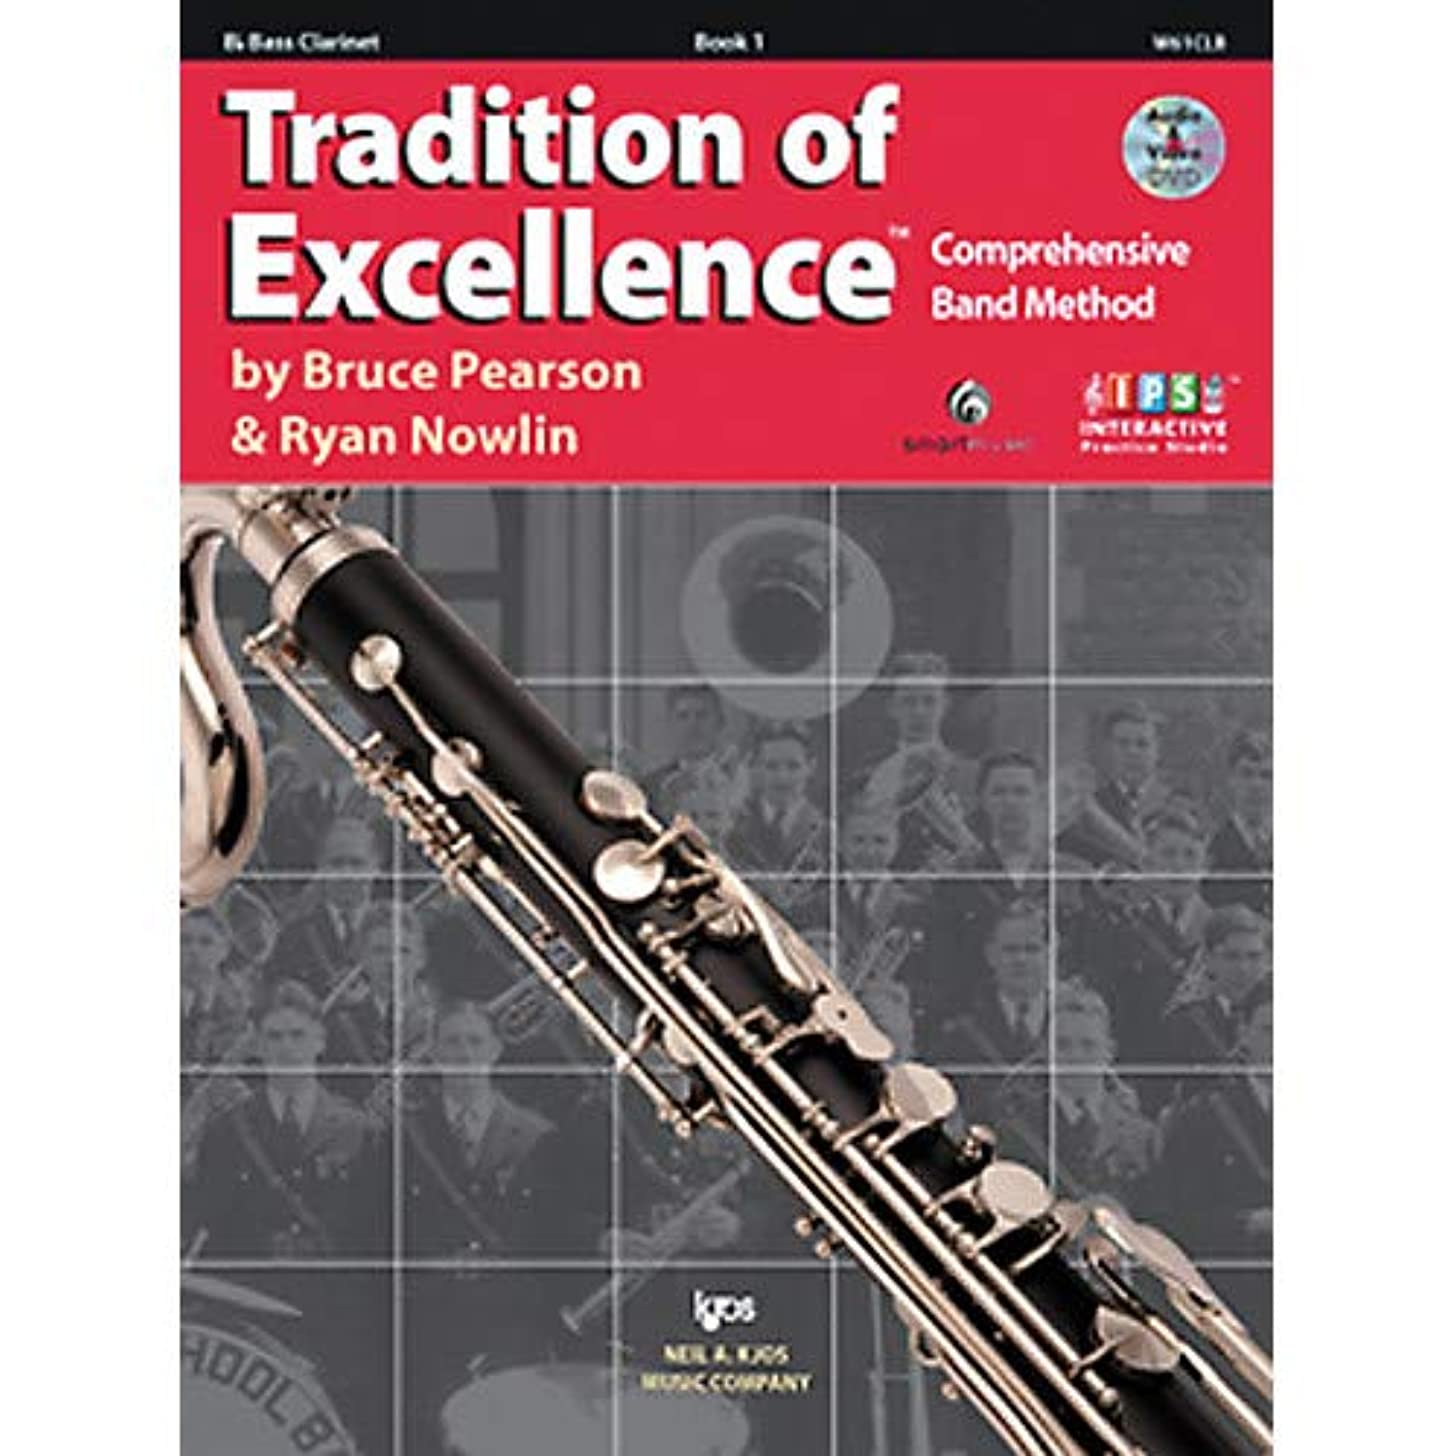 Tradition Of Excellence Book 1 for Bass Clarinet Pack of 2